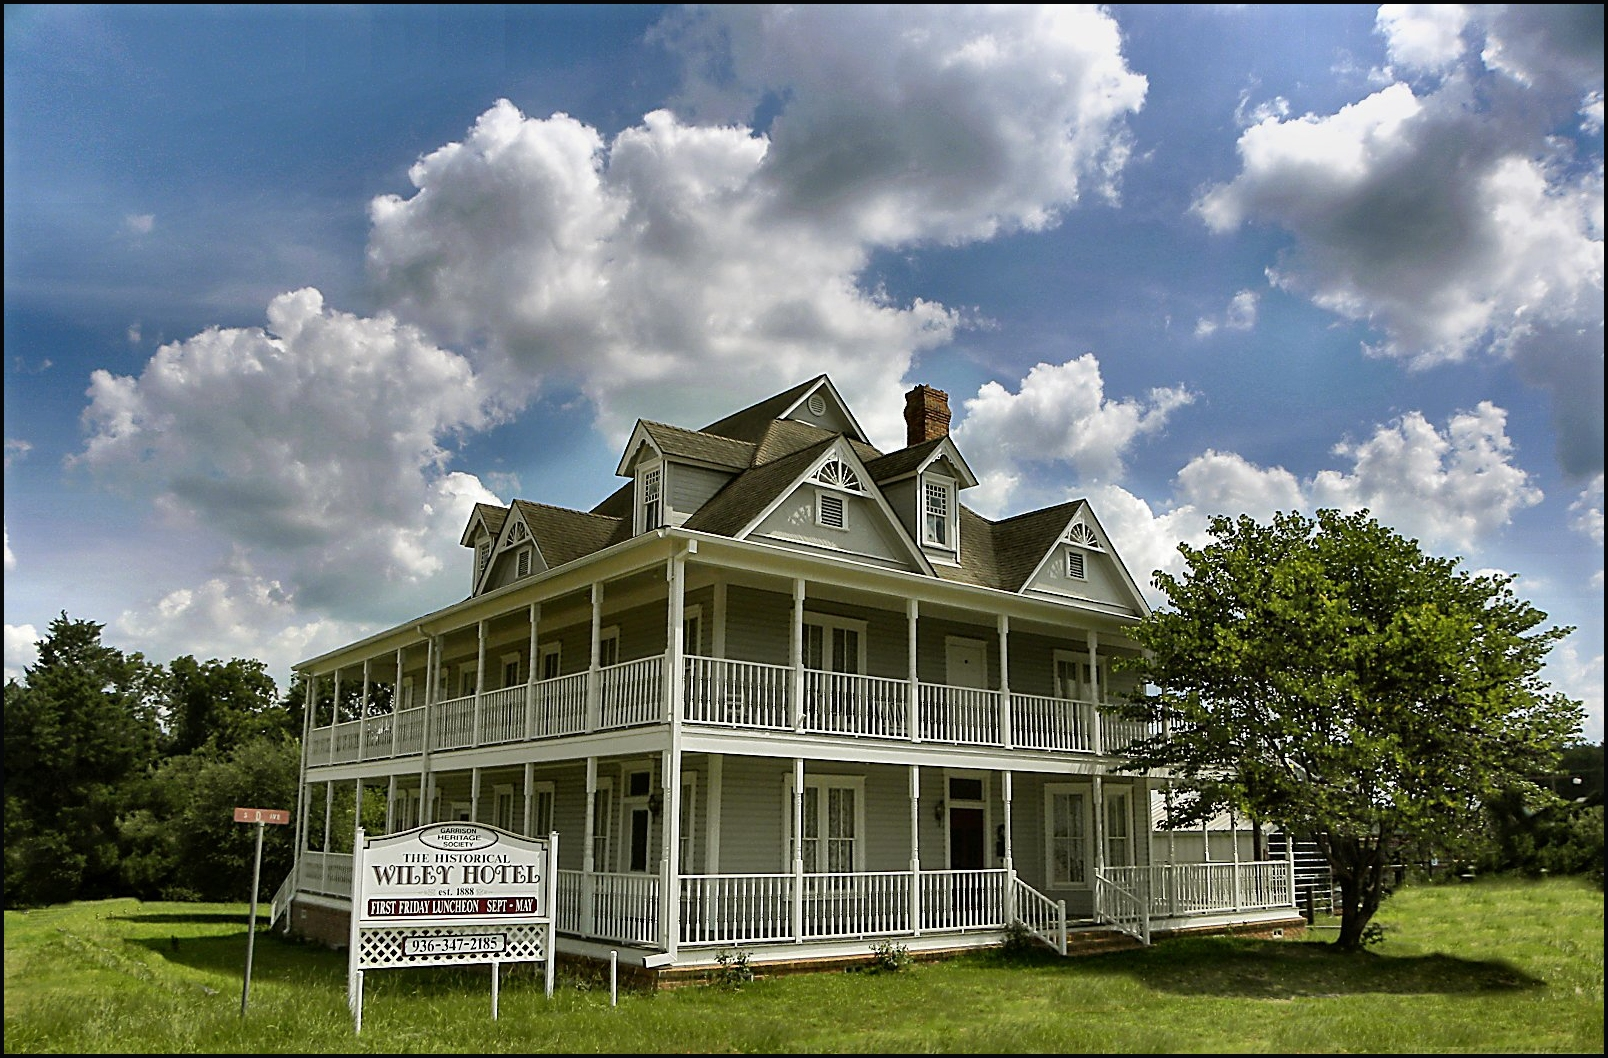 The Wiley Hotel In Garrison Texas